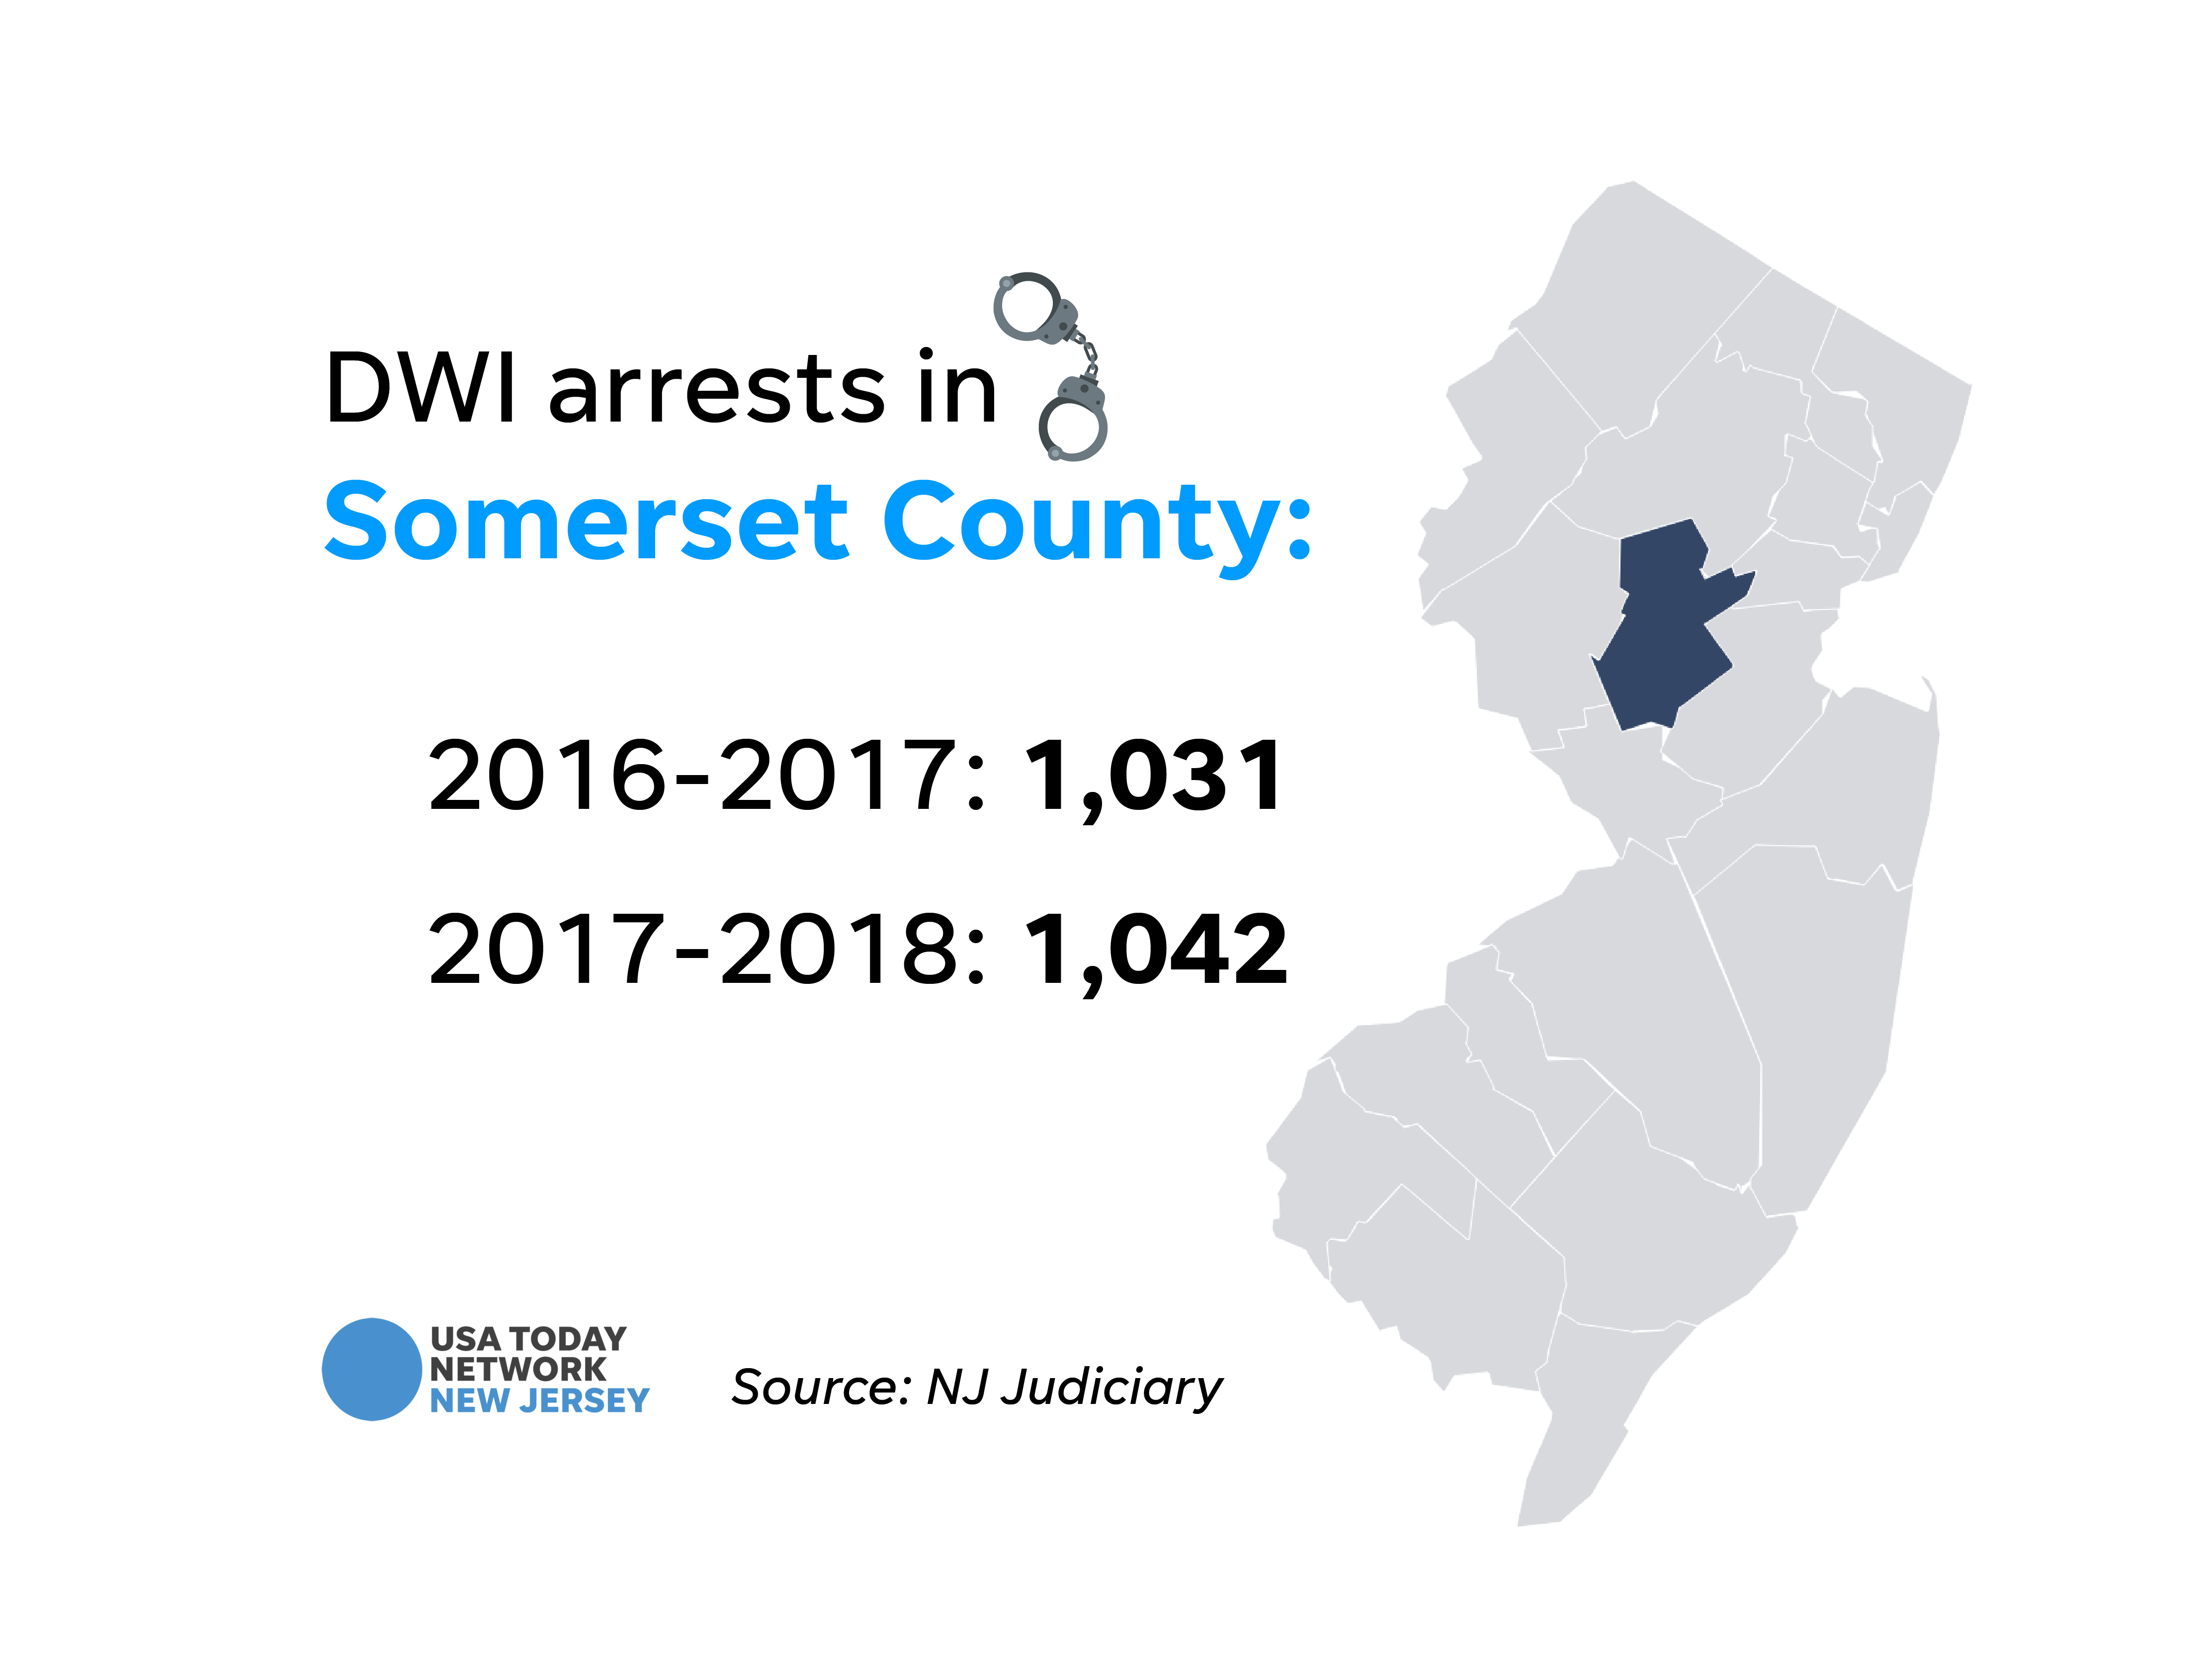 DWI arrests in Somerset County.